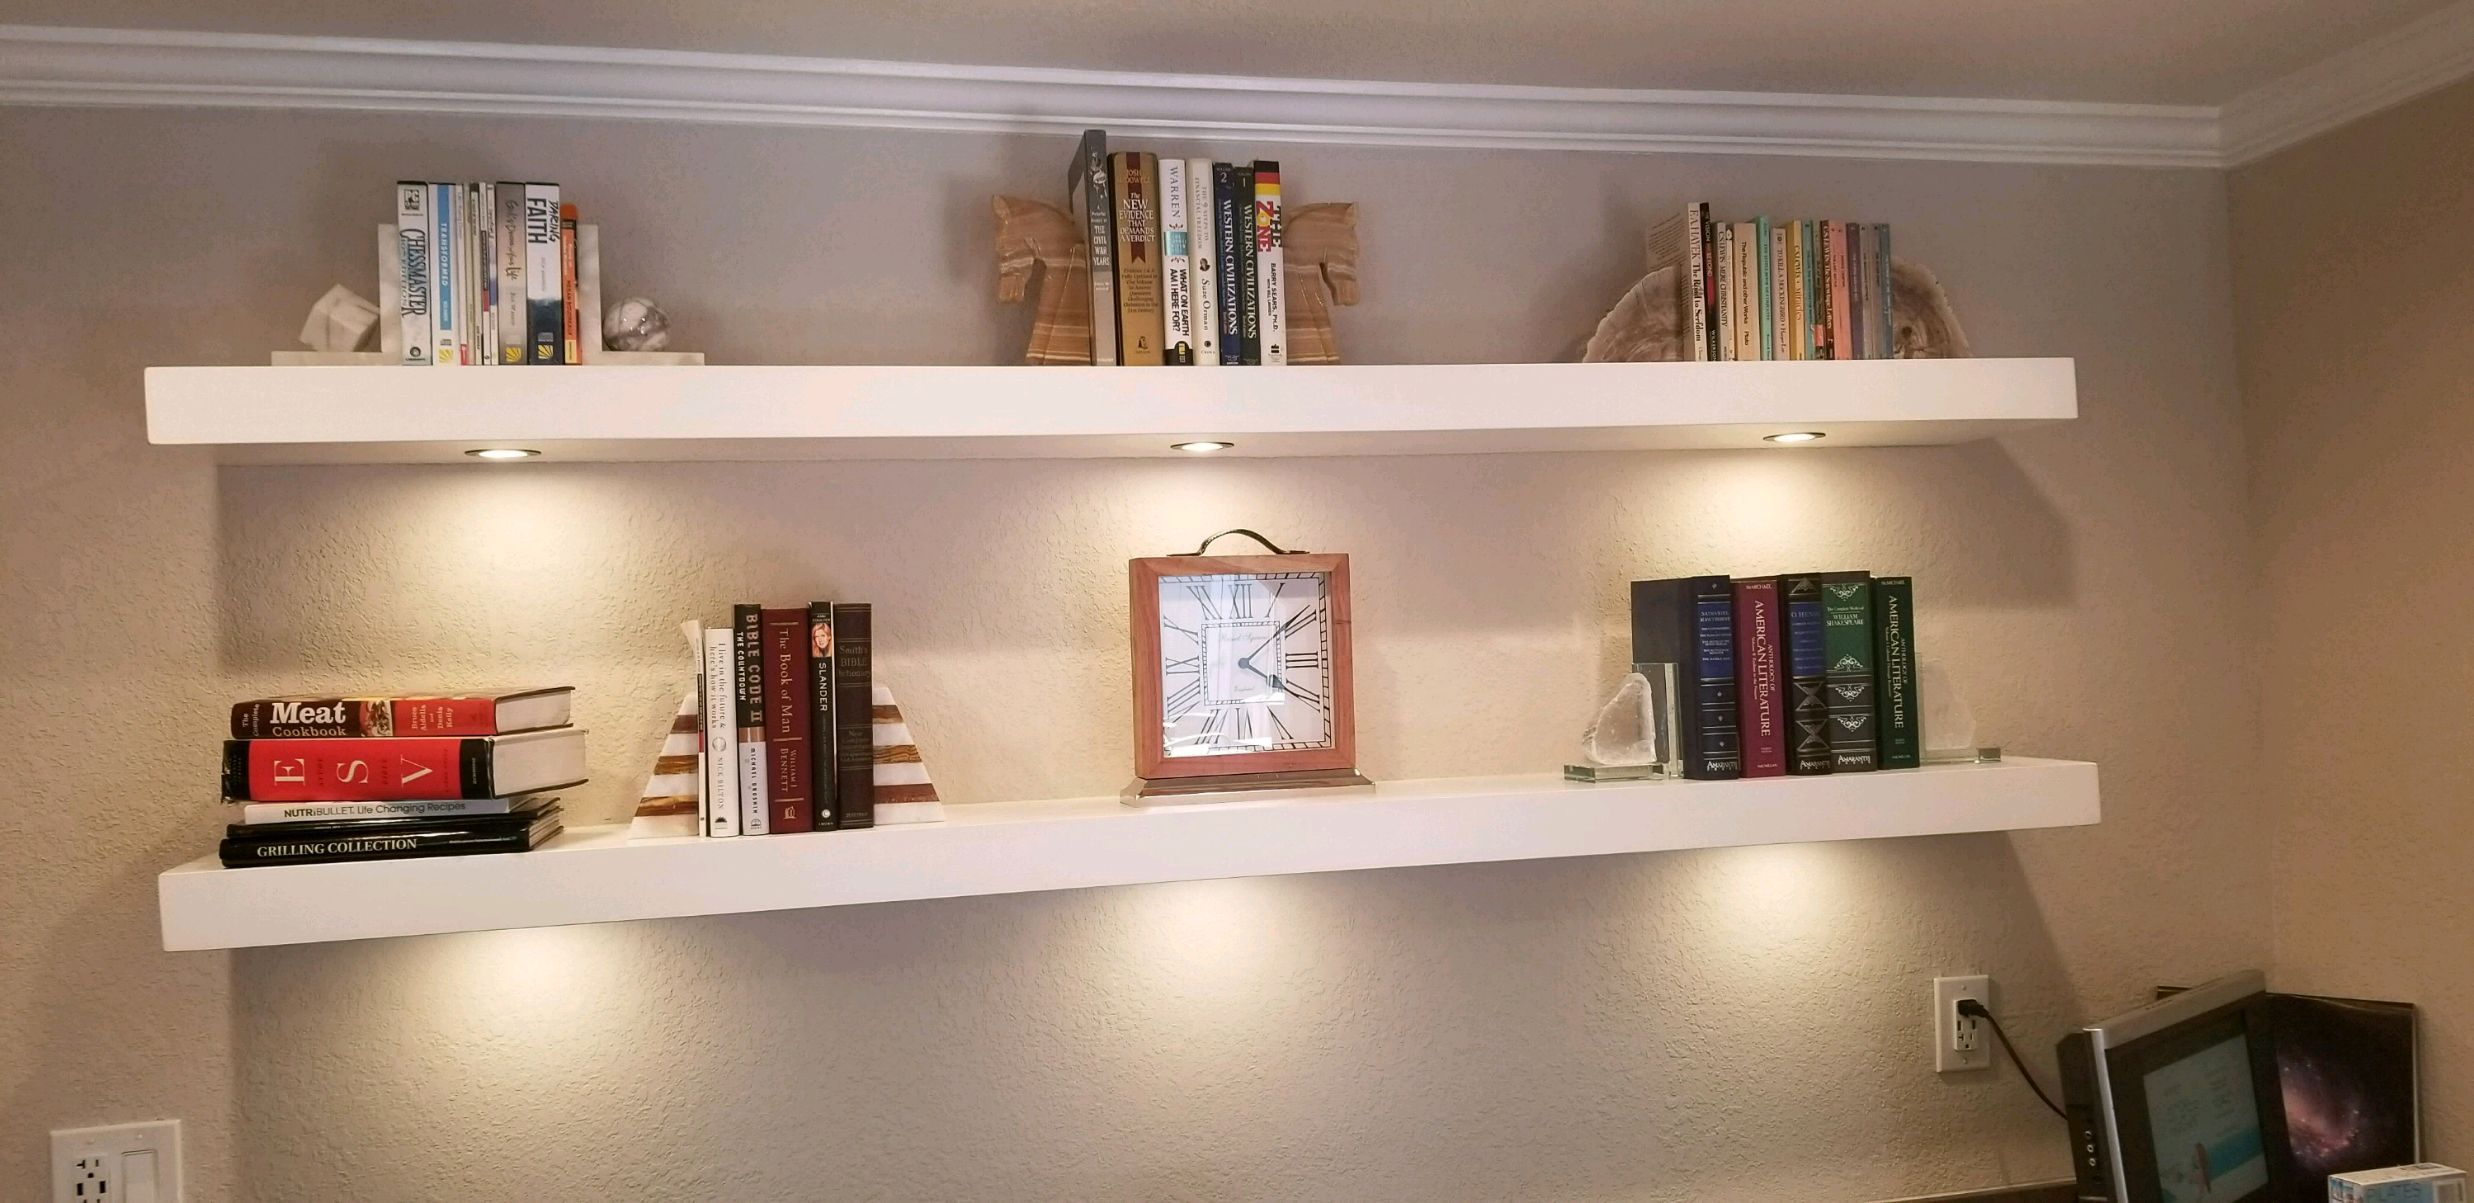 Our Floating Shelves With Led Lighting Floating Shelves Floating Shelves With Lights Shelves